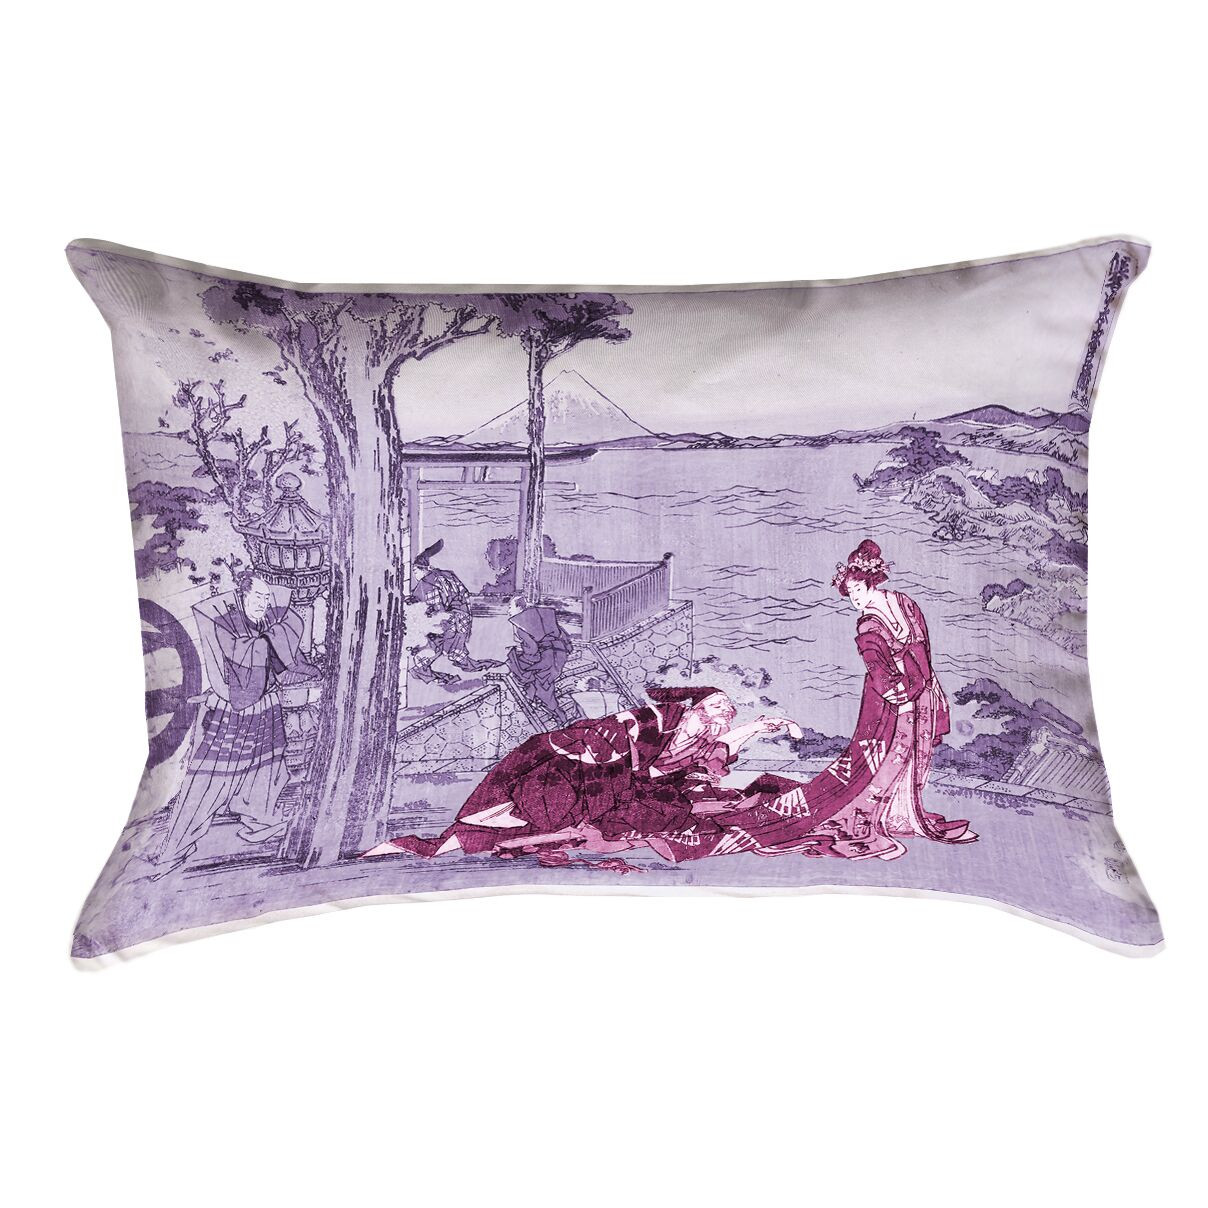 Enya Japanese Courtesan Pillow Cover  Color: Pink/Purple